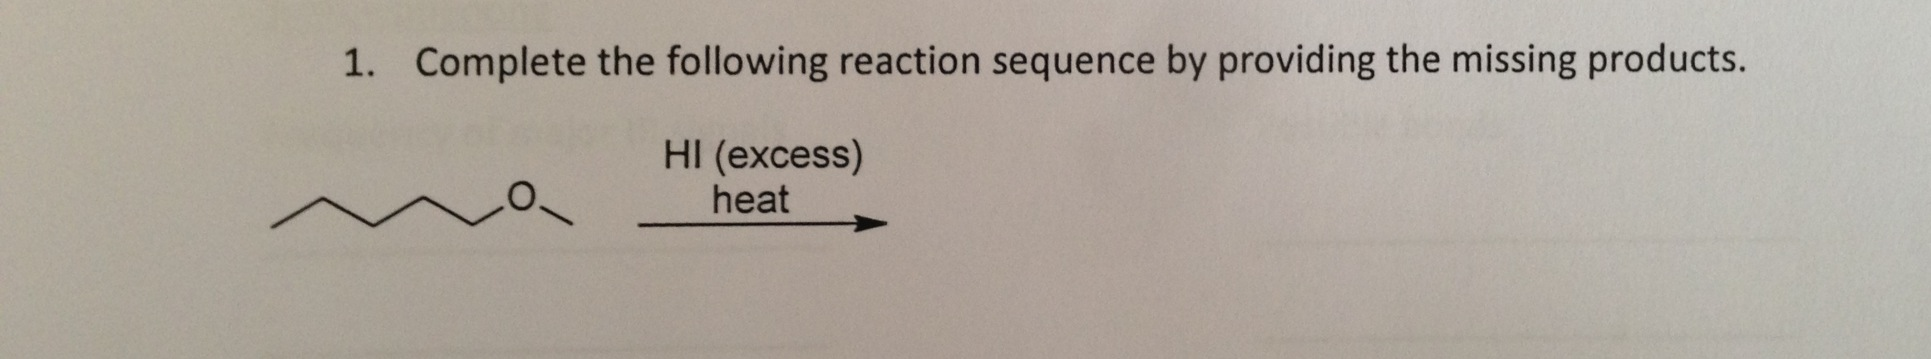 Complete the following reaction sequence by provid